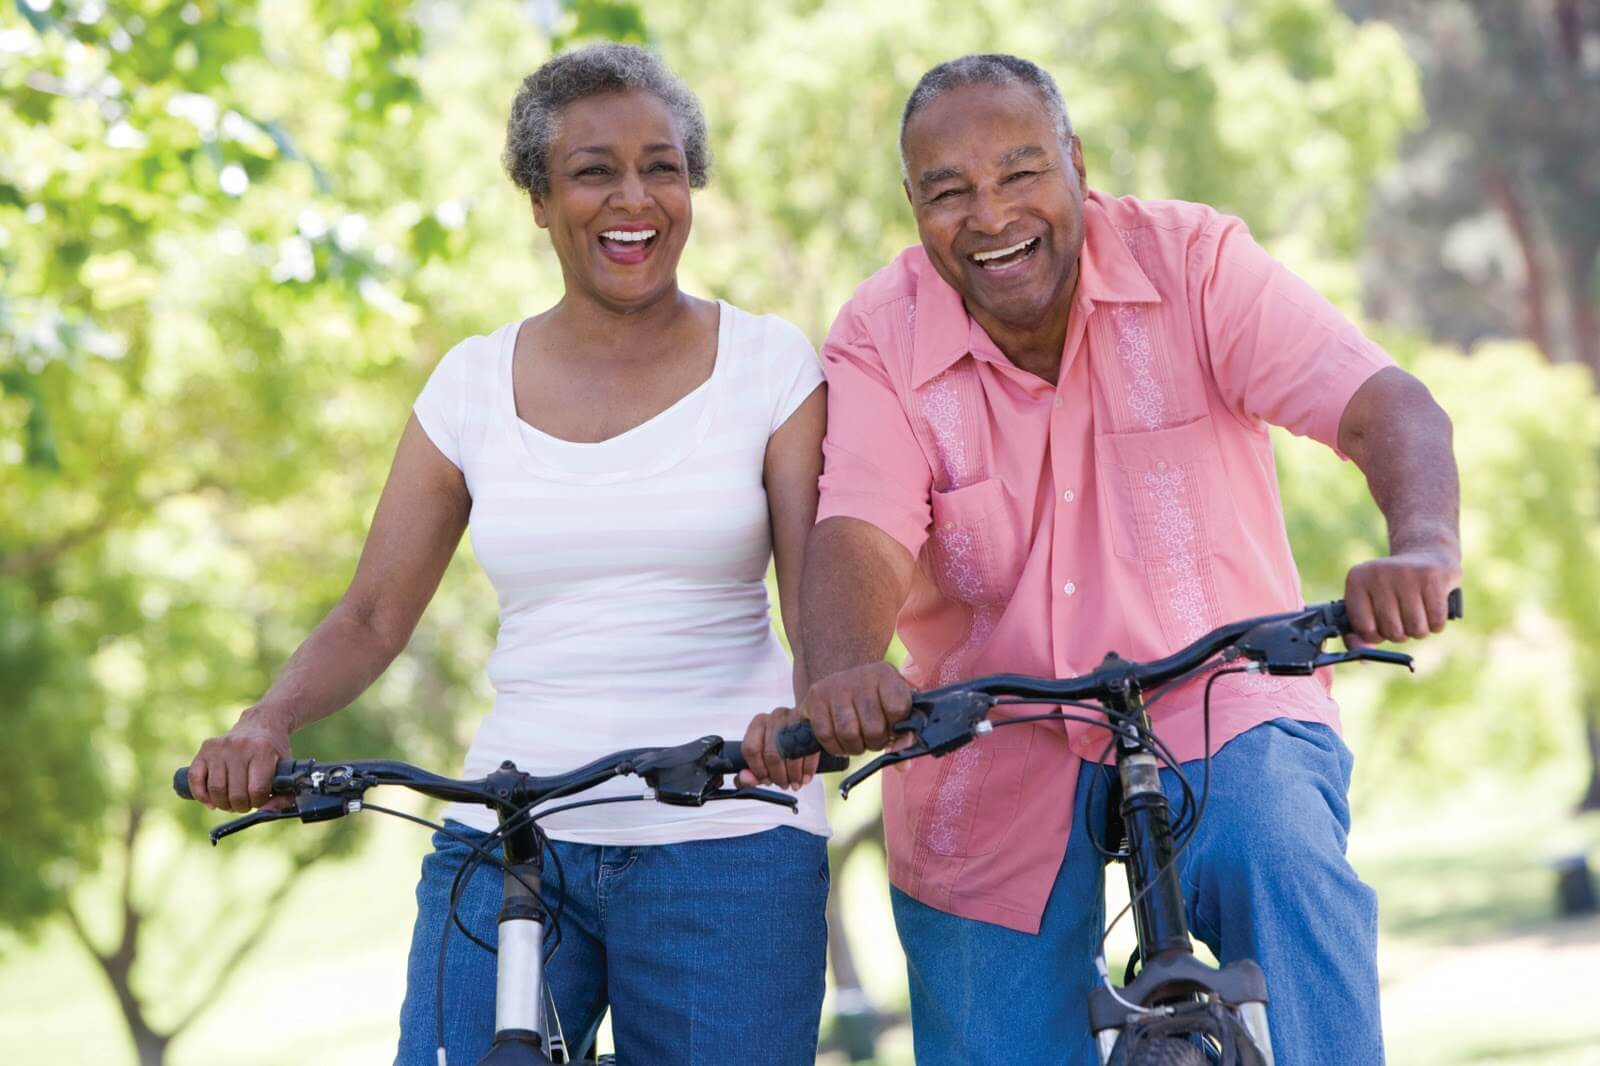 senior black couple on bicycles